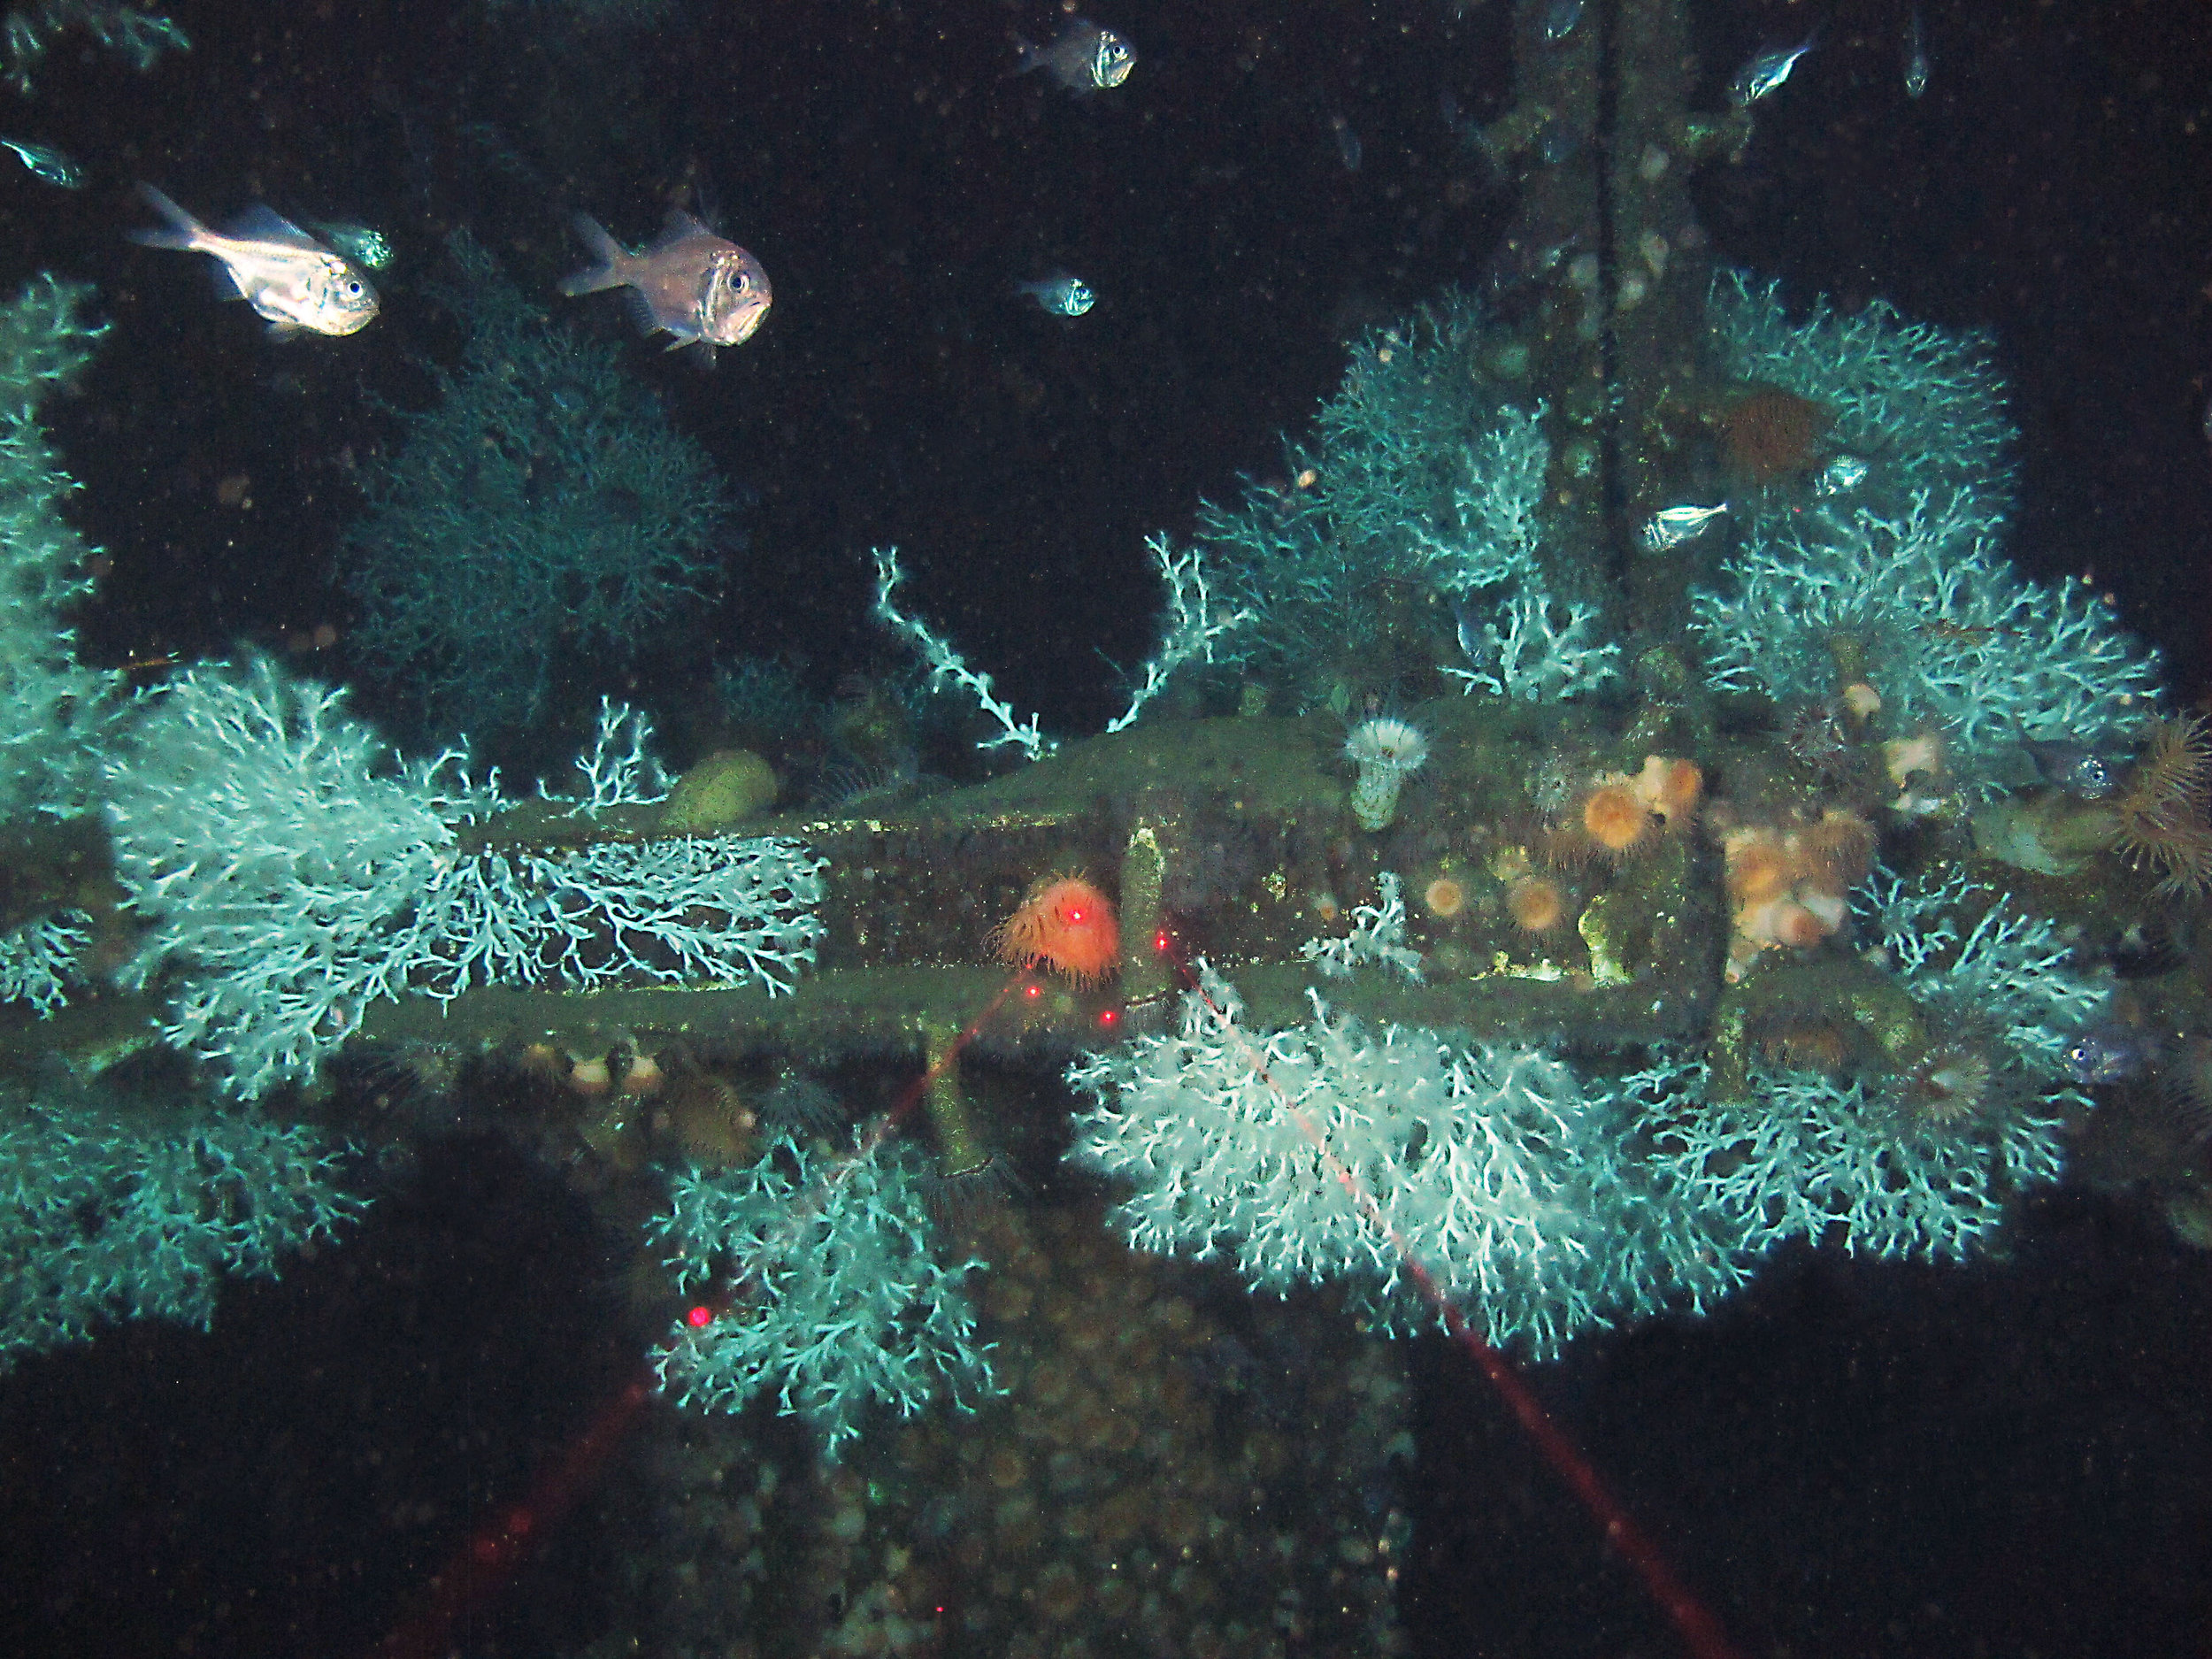 ROV Marine Life Survey: Deep Subsea Equipment - Blue Latitudes managed and designed a marine life survey using a remotely operated vehicle (ROV) equipped with video to evaluate ecological biodiversity and abundance on a subsea template and associated wells located in approximately 970 ft of water in the Garden Banks region of the Gulf of Mexico. This survey was integrated into plug and abandonment efforts to minimize vessel cost. Additionally, apparent commercial and recreational fishing activity in the area surrounding the site was evaluated. All ROV marine life and fishing activity data into a report that was presented to the United States Navy and Bureau of Safety and Environmental Enforcement. The project resulted in the first subsea equipment permitted in-situ at a depth shallower than 1,000 ft.